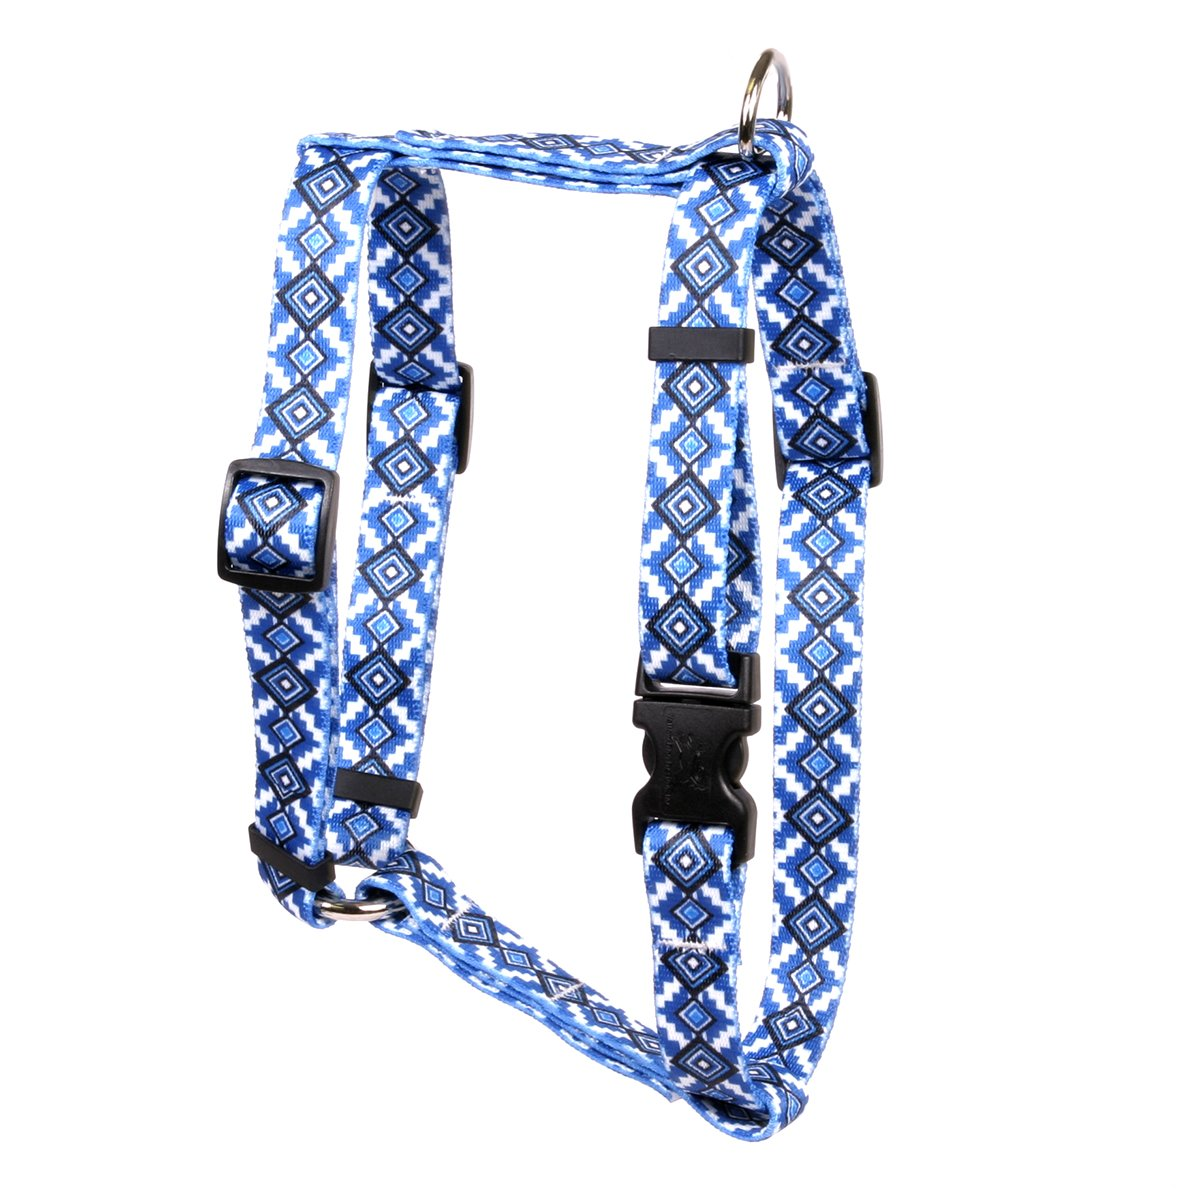 Yellow Dog Design Aztec Blue Roman Style H Dog Harness Fits Chest Circumference of 8 to 14'', X-Small/3/8